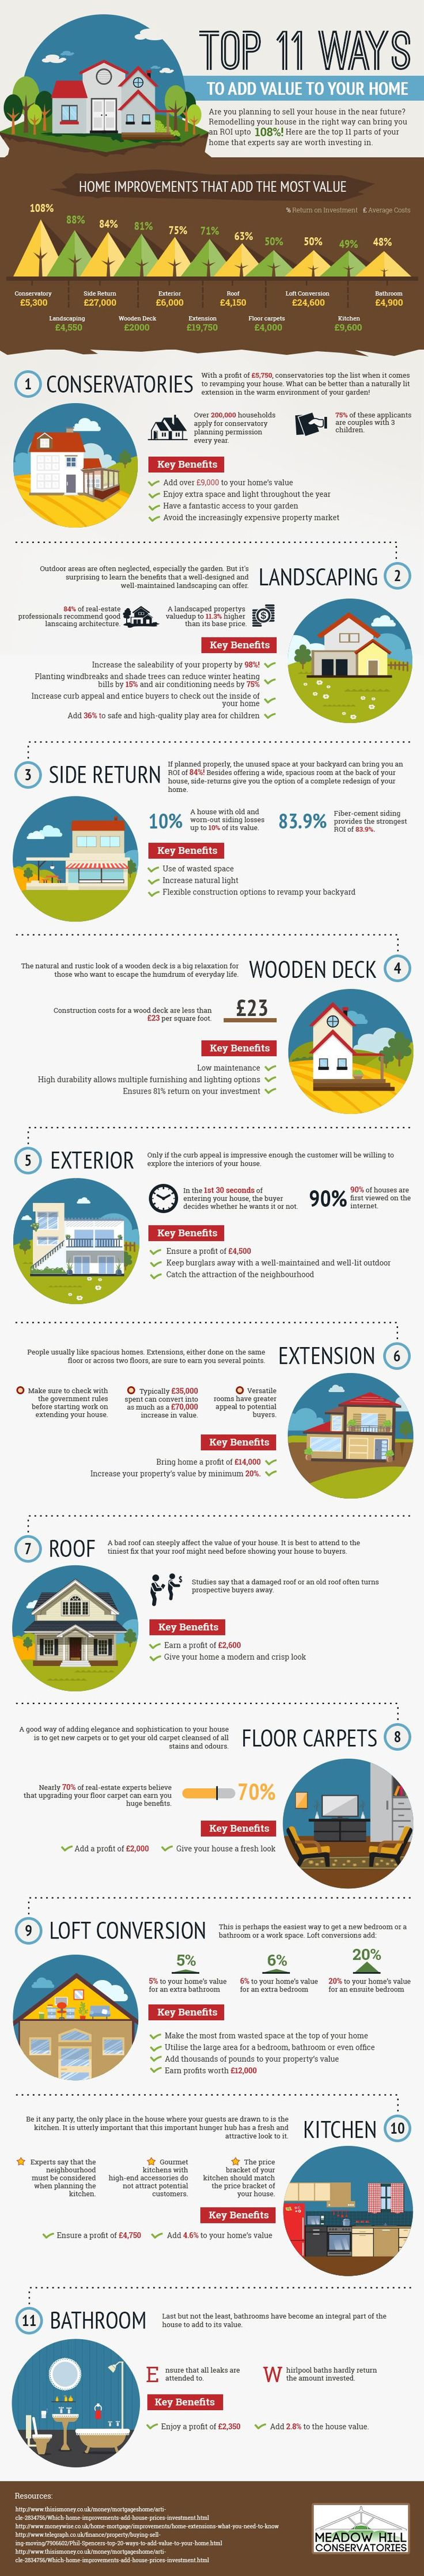 Best Ways to Add Value to Your Home #infographic #HomeImprovement #RealEstate